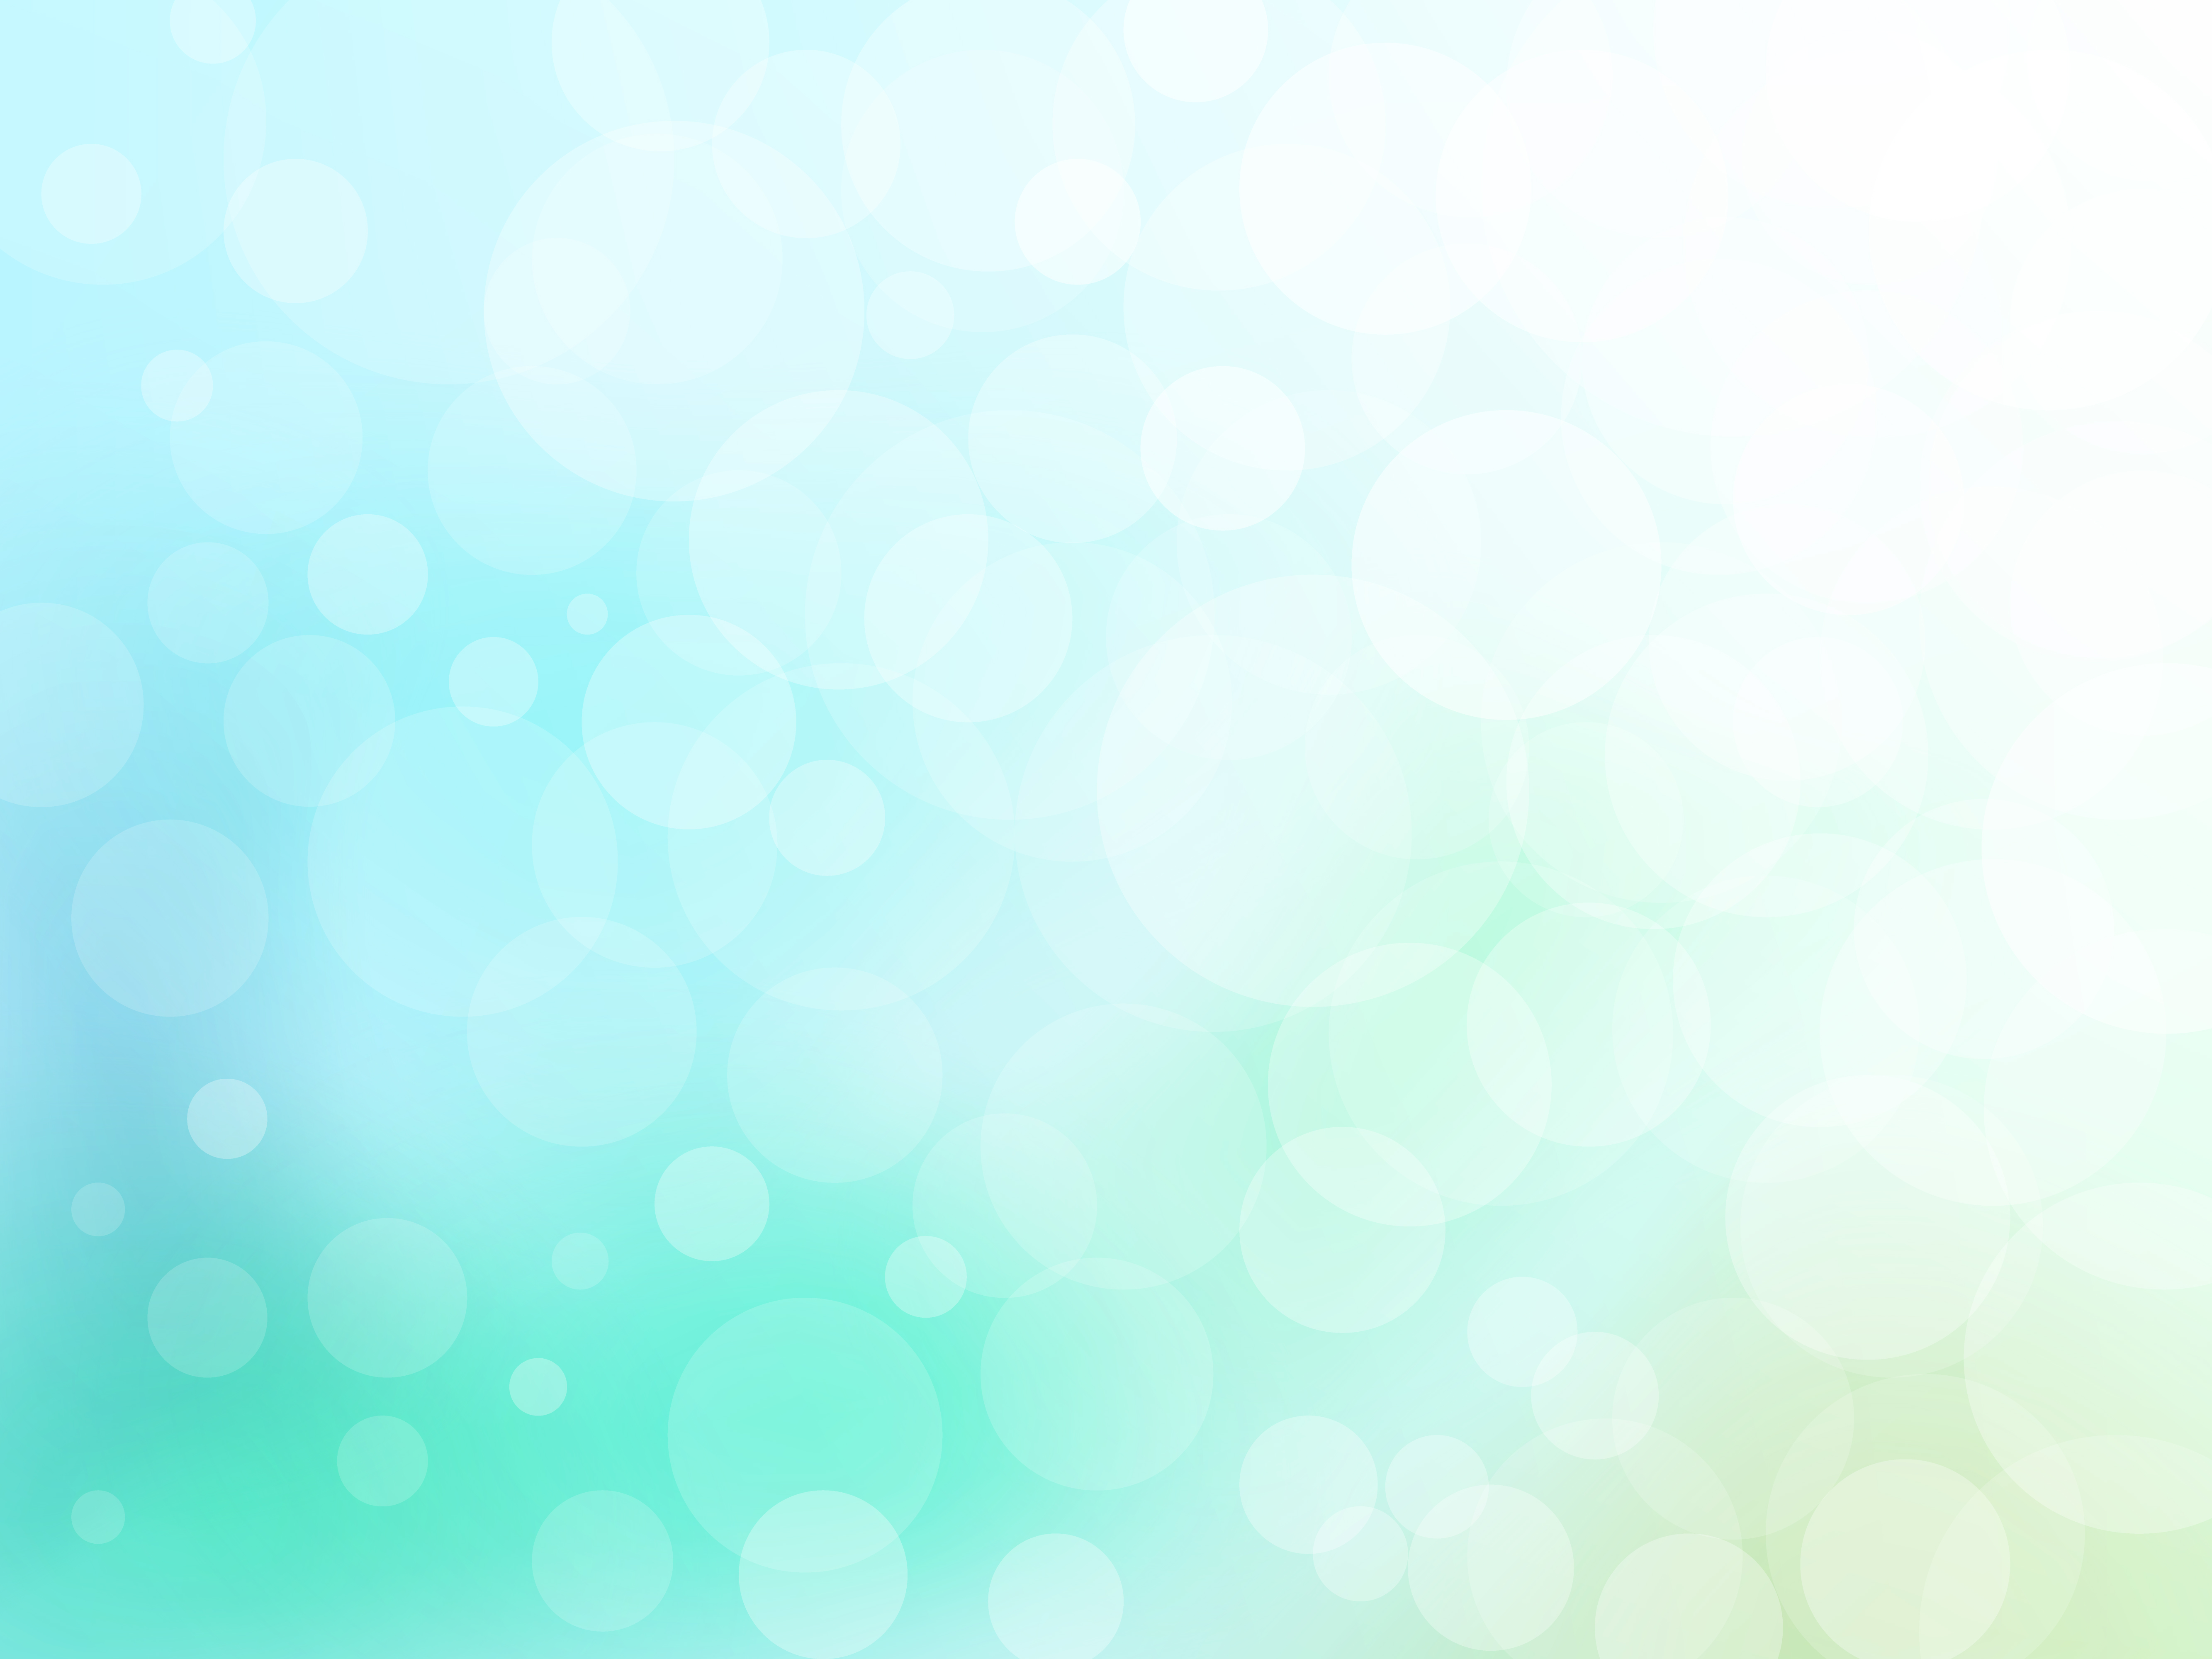 bokeh abstract background on blue and green vector graphic art download free vectors clipart graphics vector art vecteezy